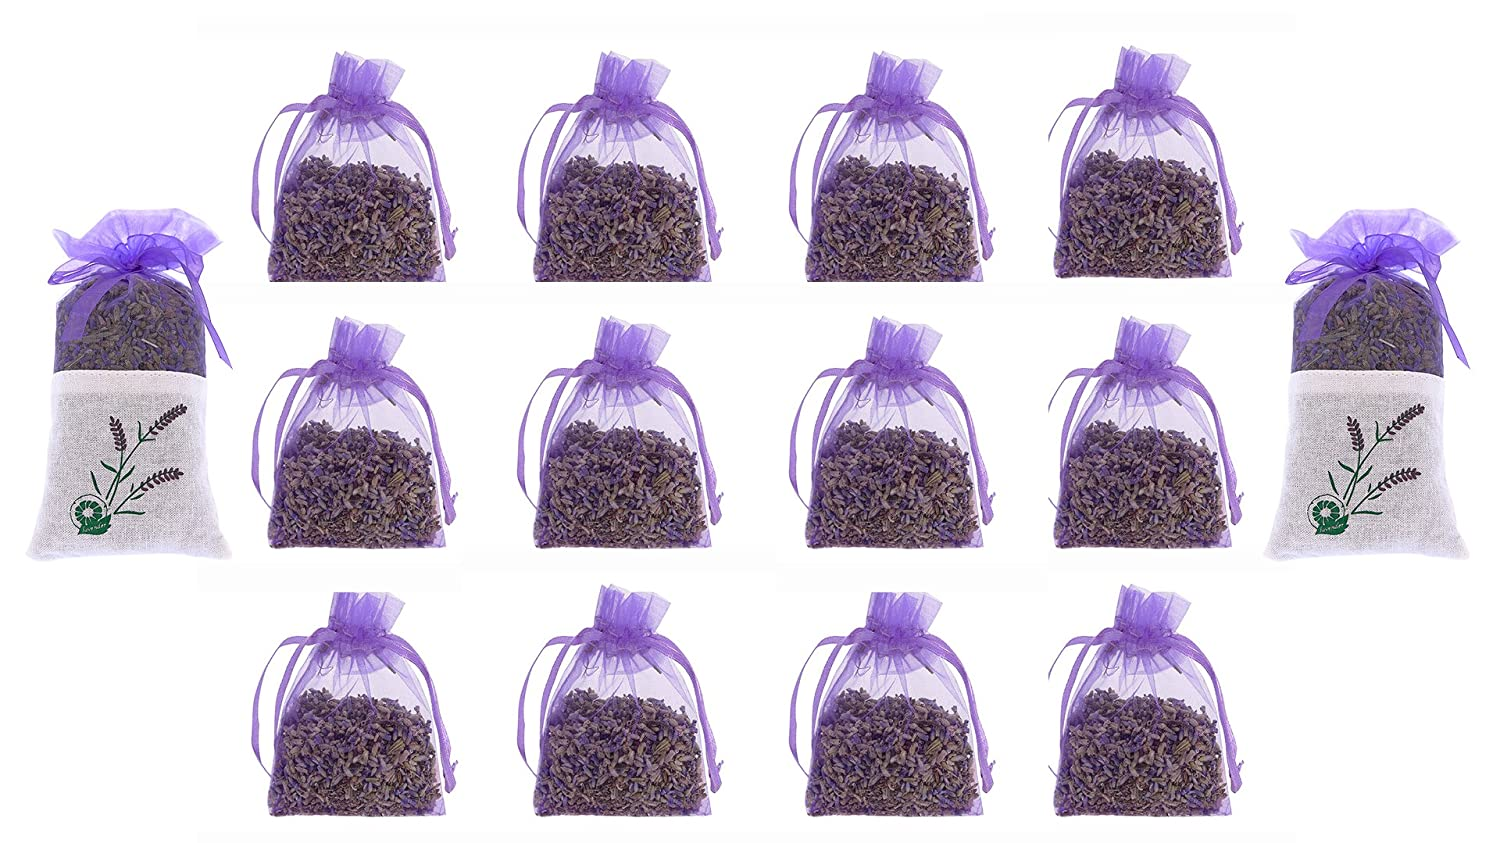 12 Pure Lavender Dry Flower 10 Grams Satchels plus 2 Pcs 20 Grams - Natural Scent Fragrance for Aromatherapy-Car-Closet-Drawers-Moths-Wardrobe The Ambient Collection